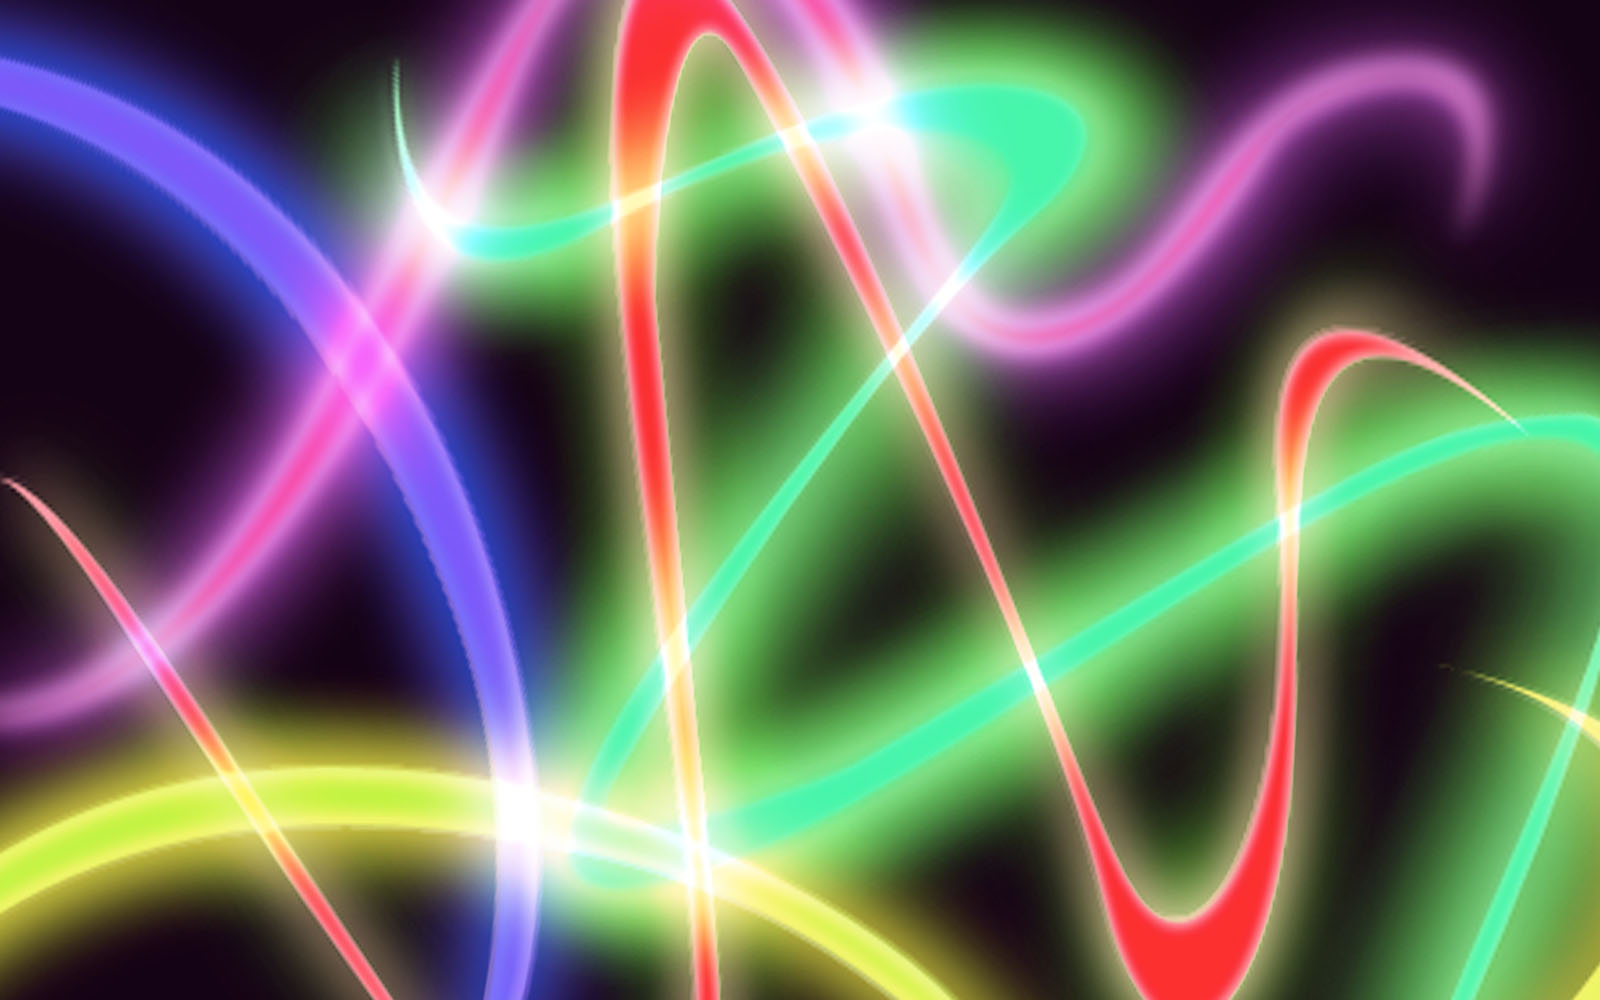 Neon Wallpapers: Wallpapers: Abstract Neon Wallpapers